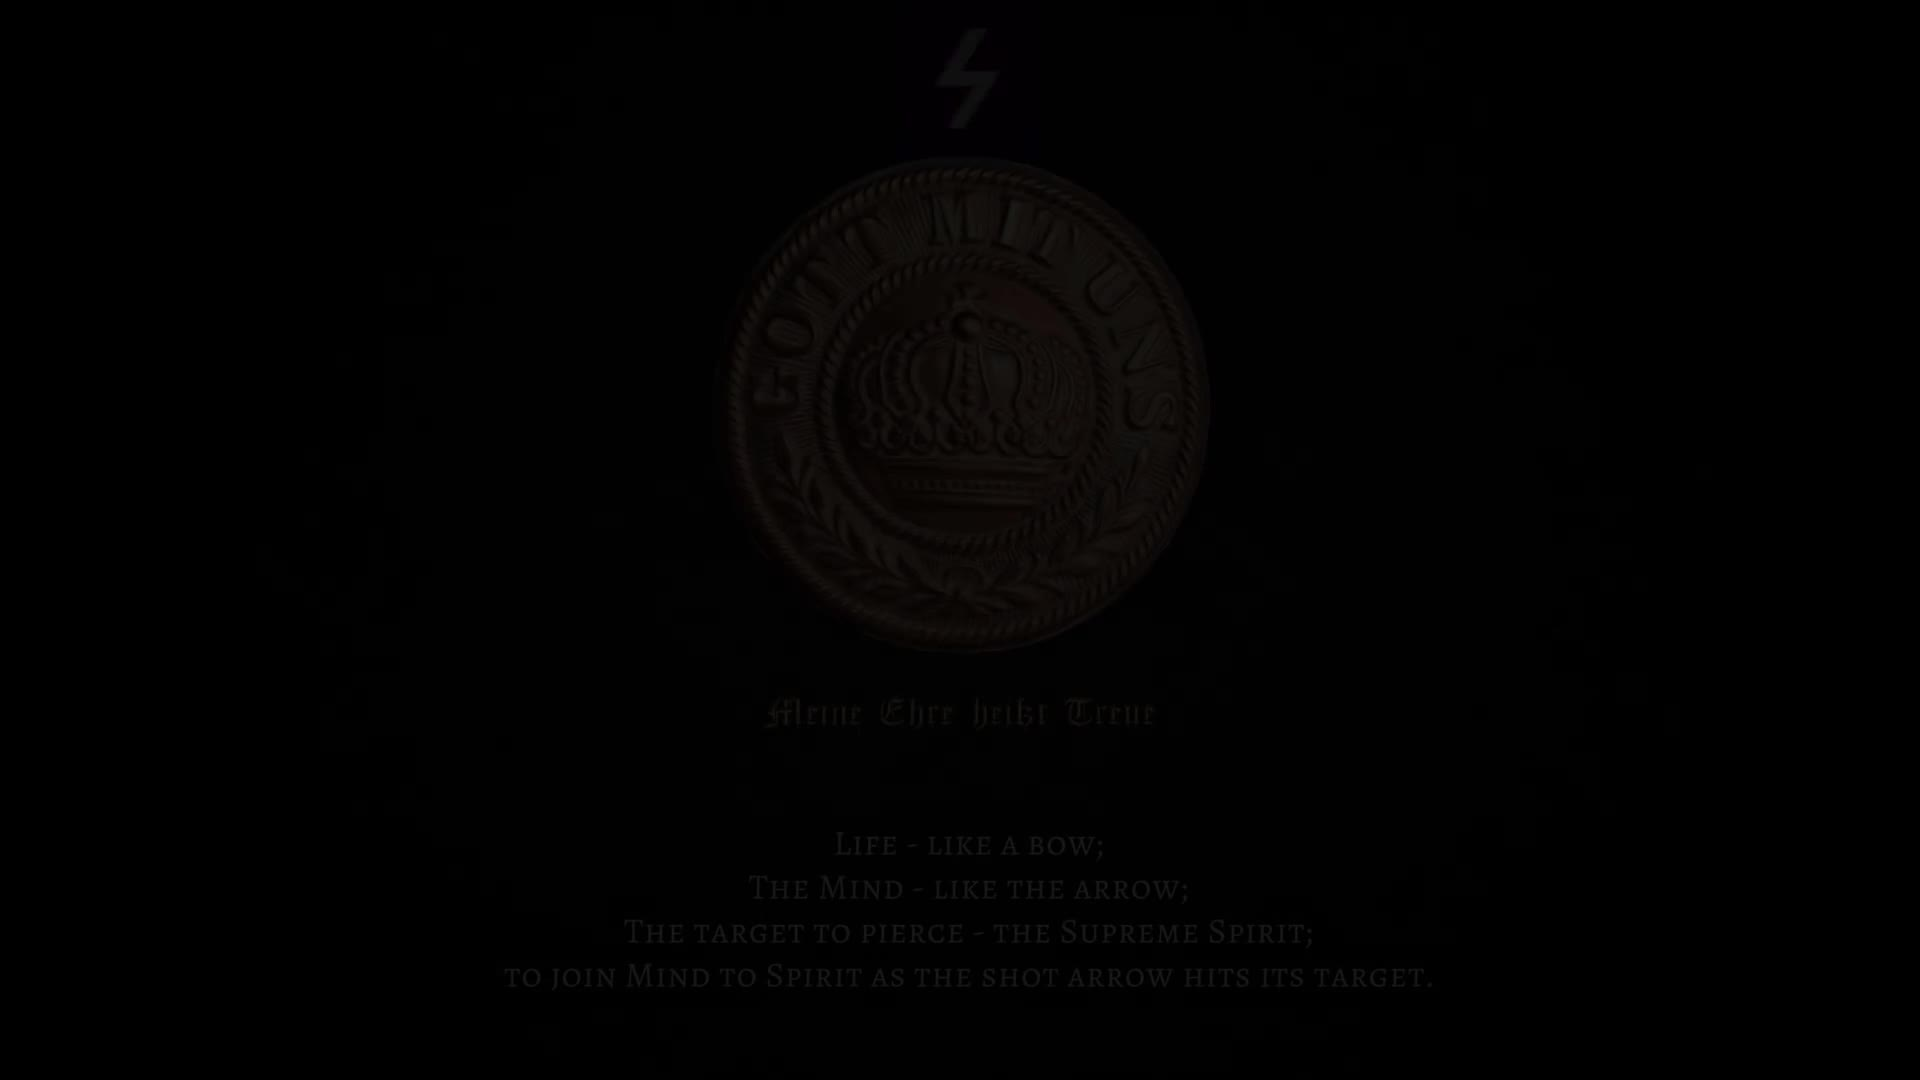 Our Subverted History, Part 4.2 - The Germanic Peoples: The Goths, Justice and Order